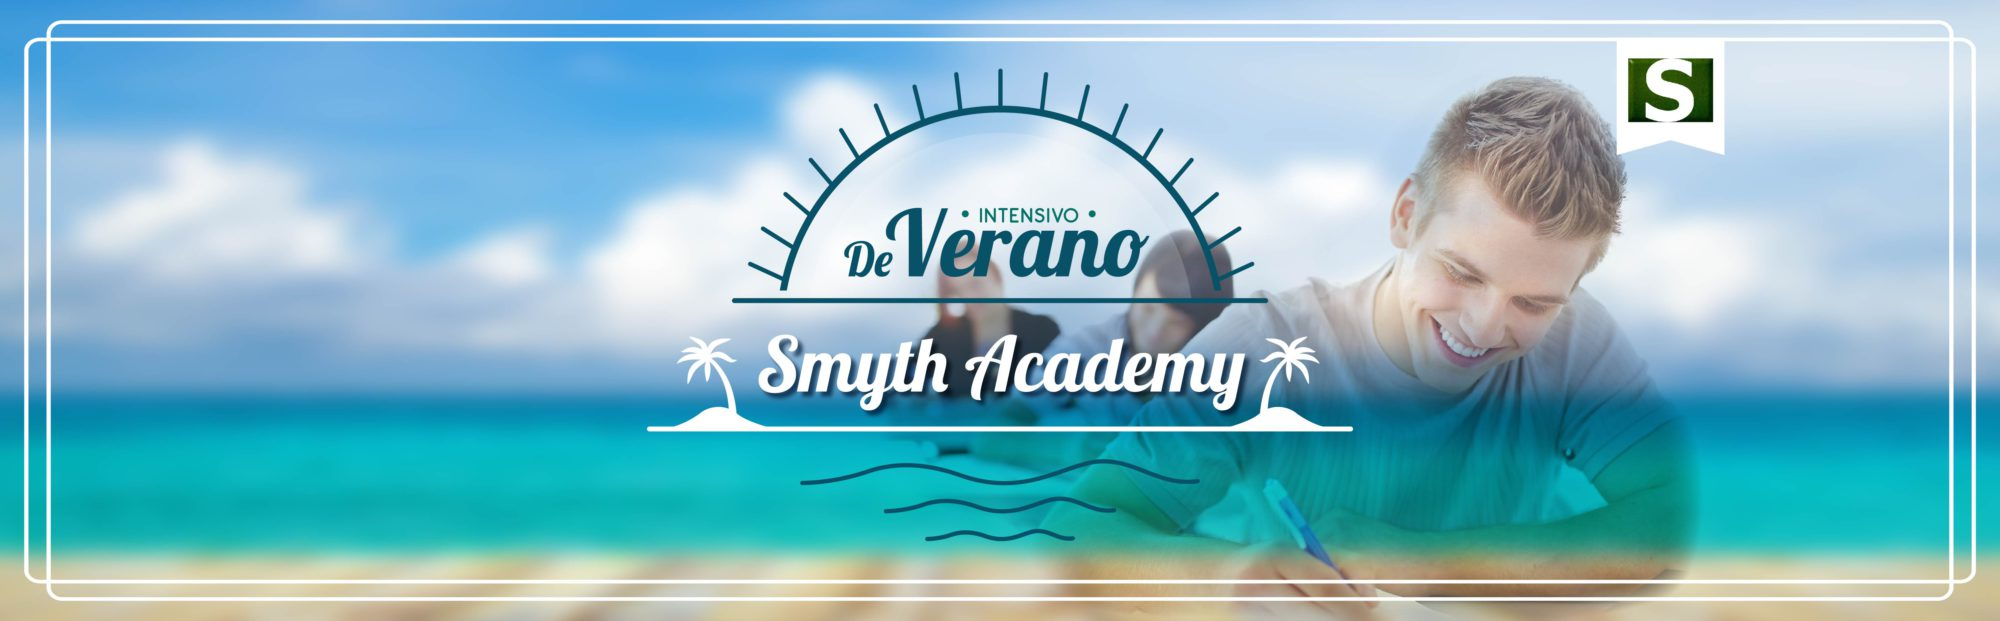 Banner-Fb-Verano-intensivo-blog